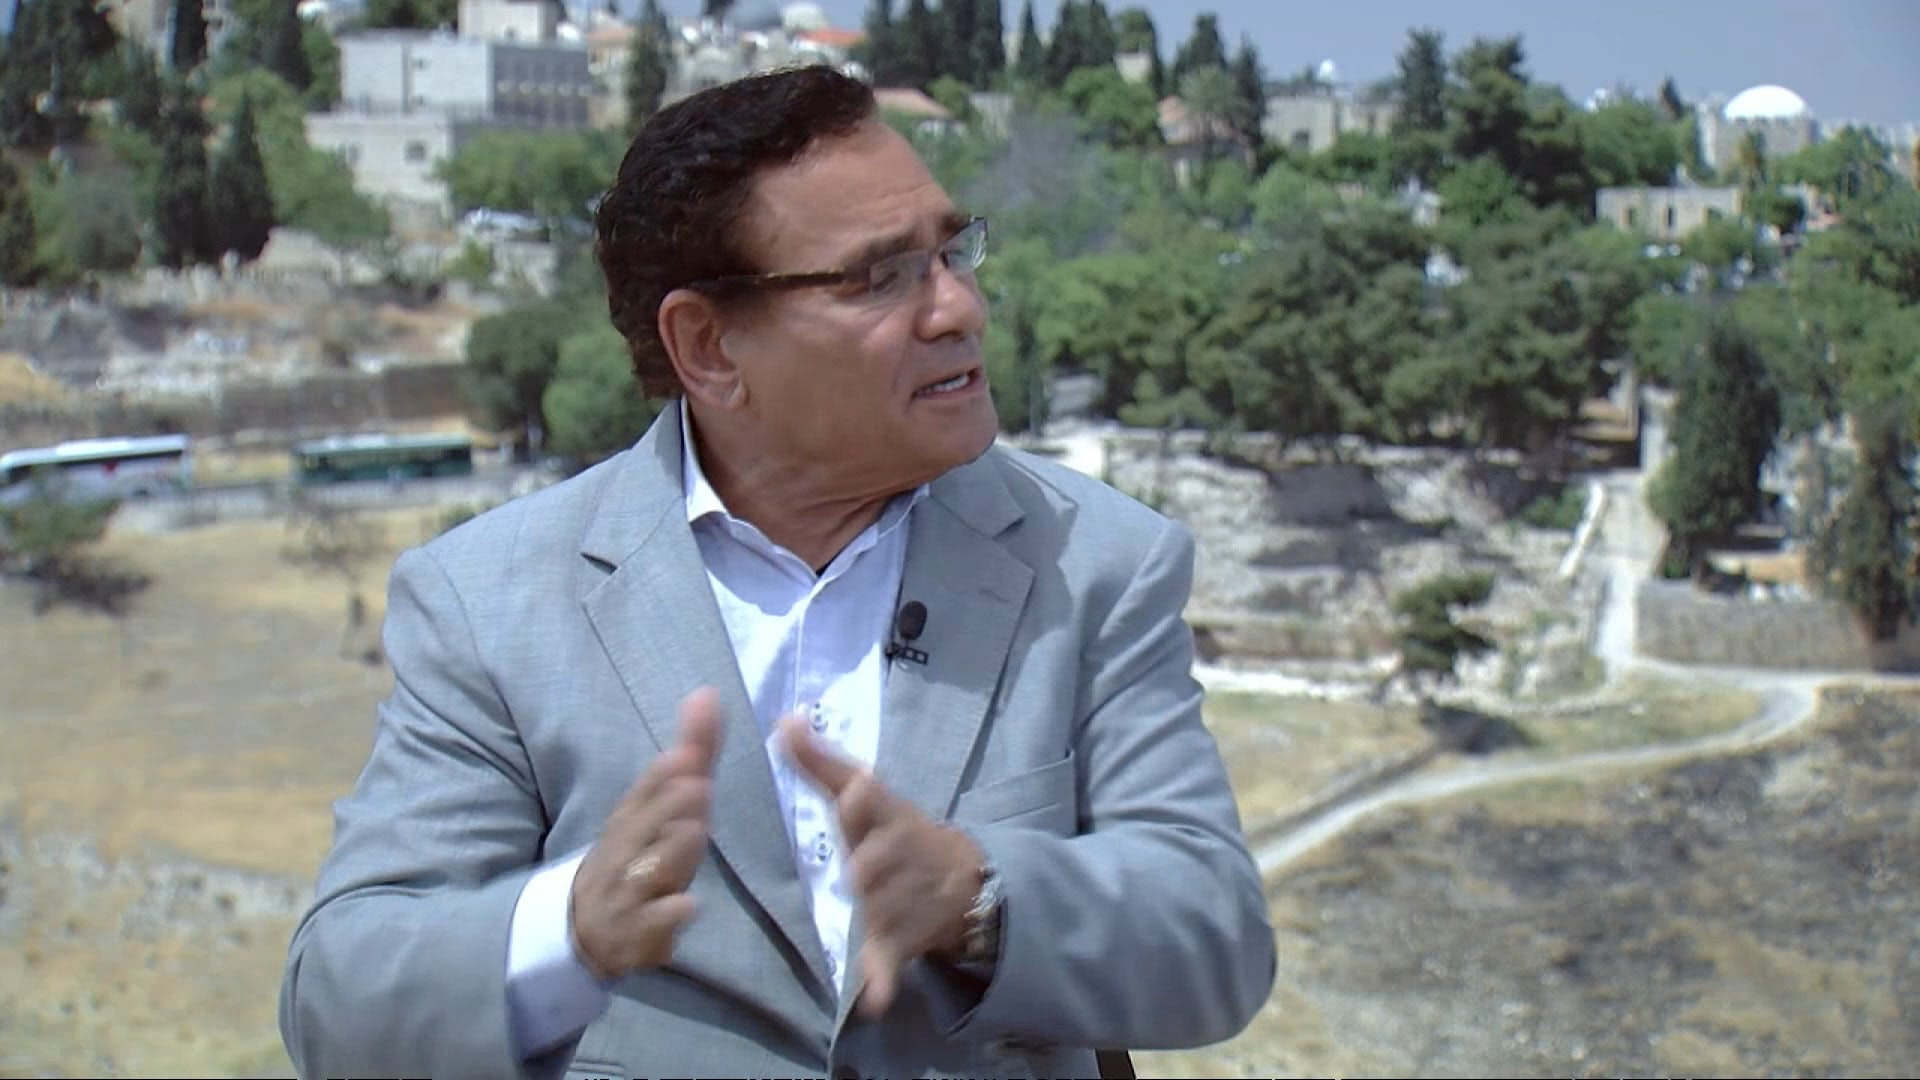 Watch God's Vision for Israel